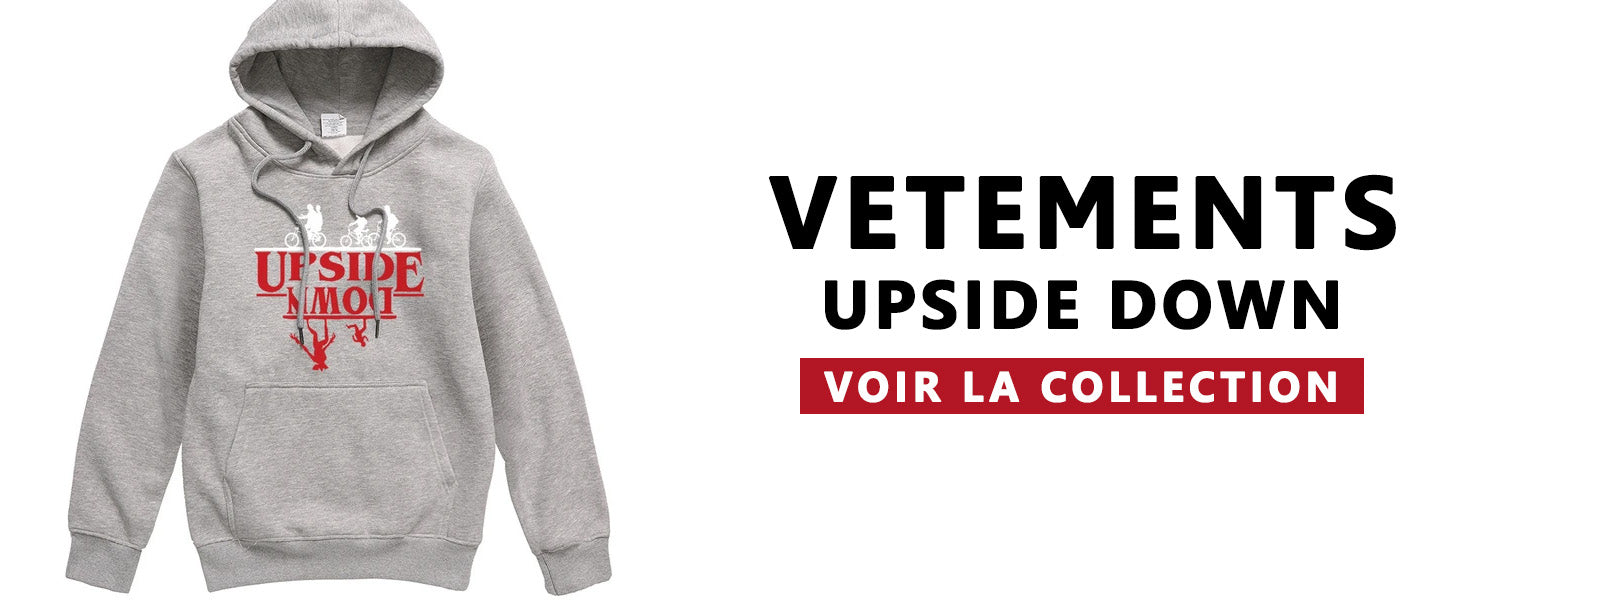 Vêtements Upside Down